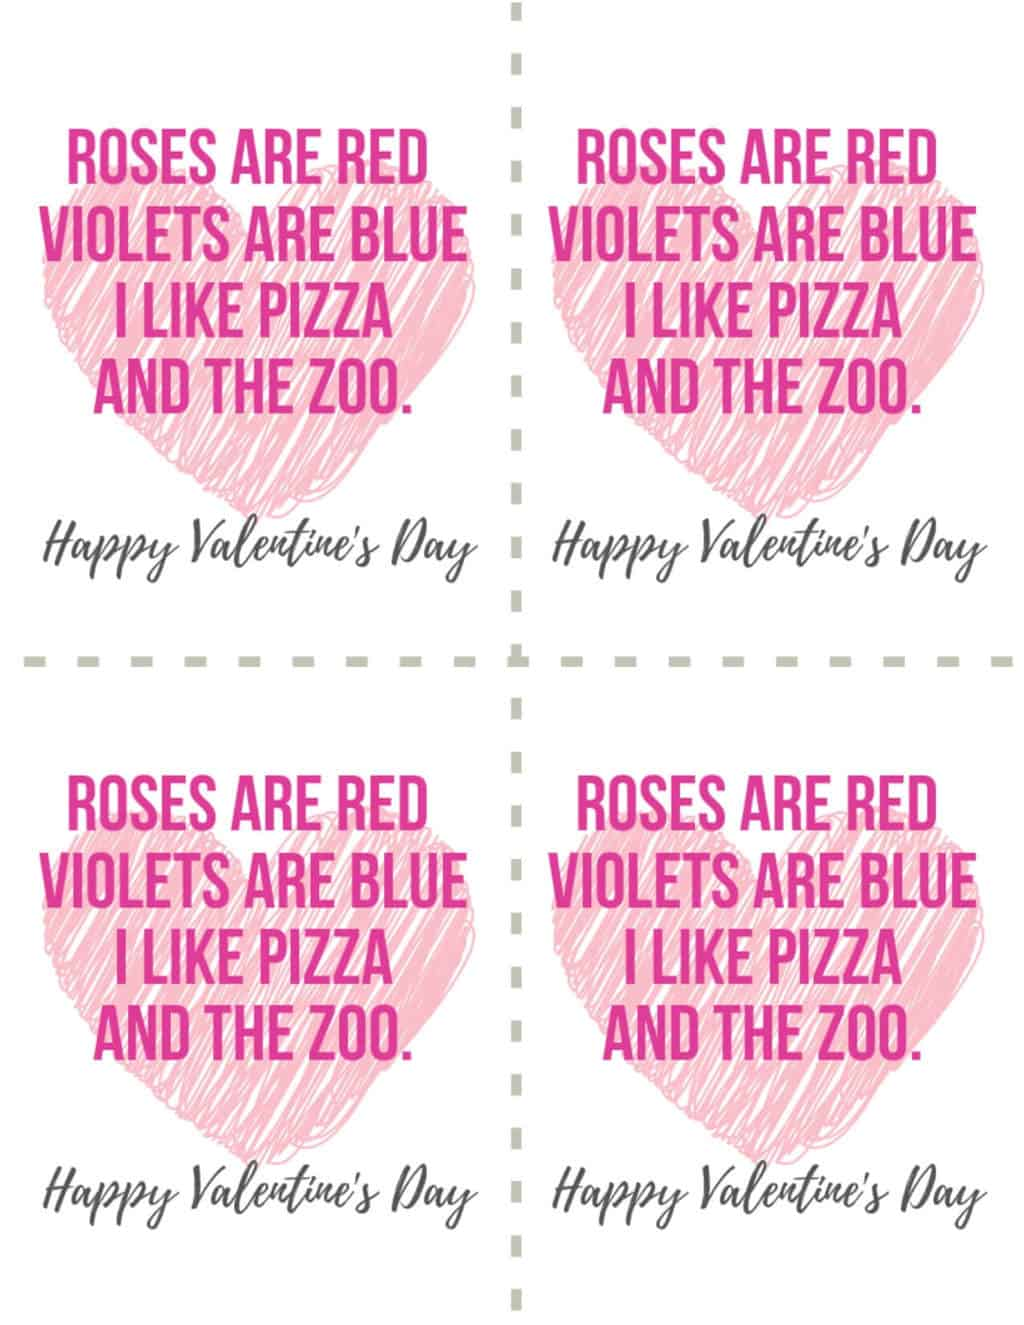 Valentine's Day Card Pink Hearts